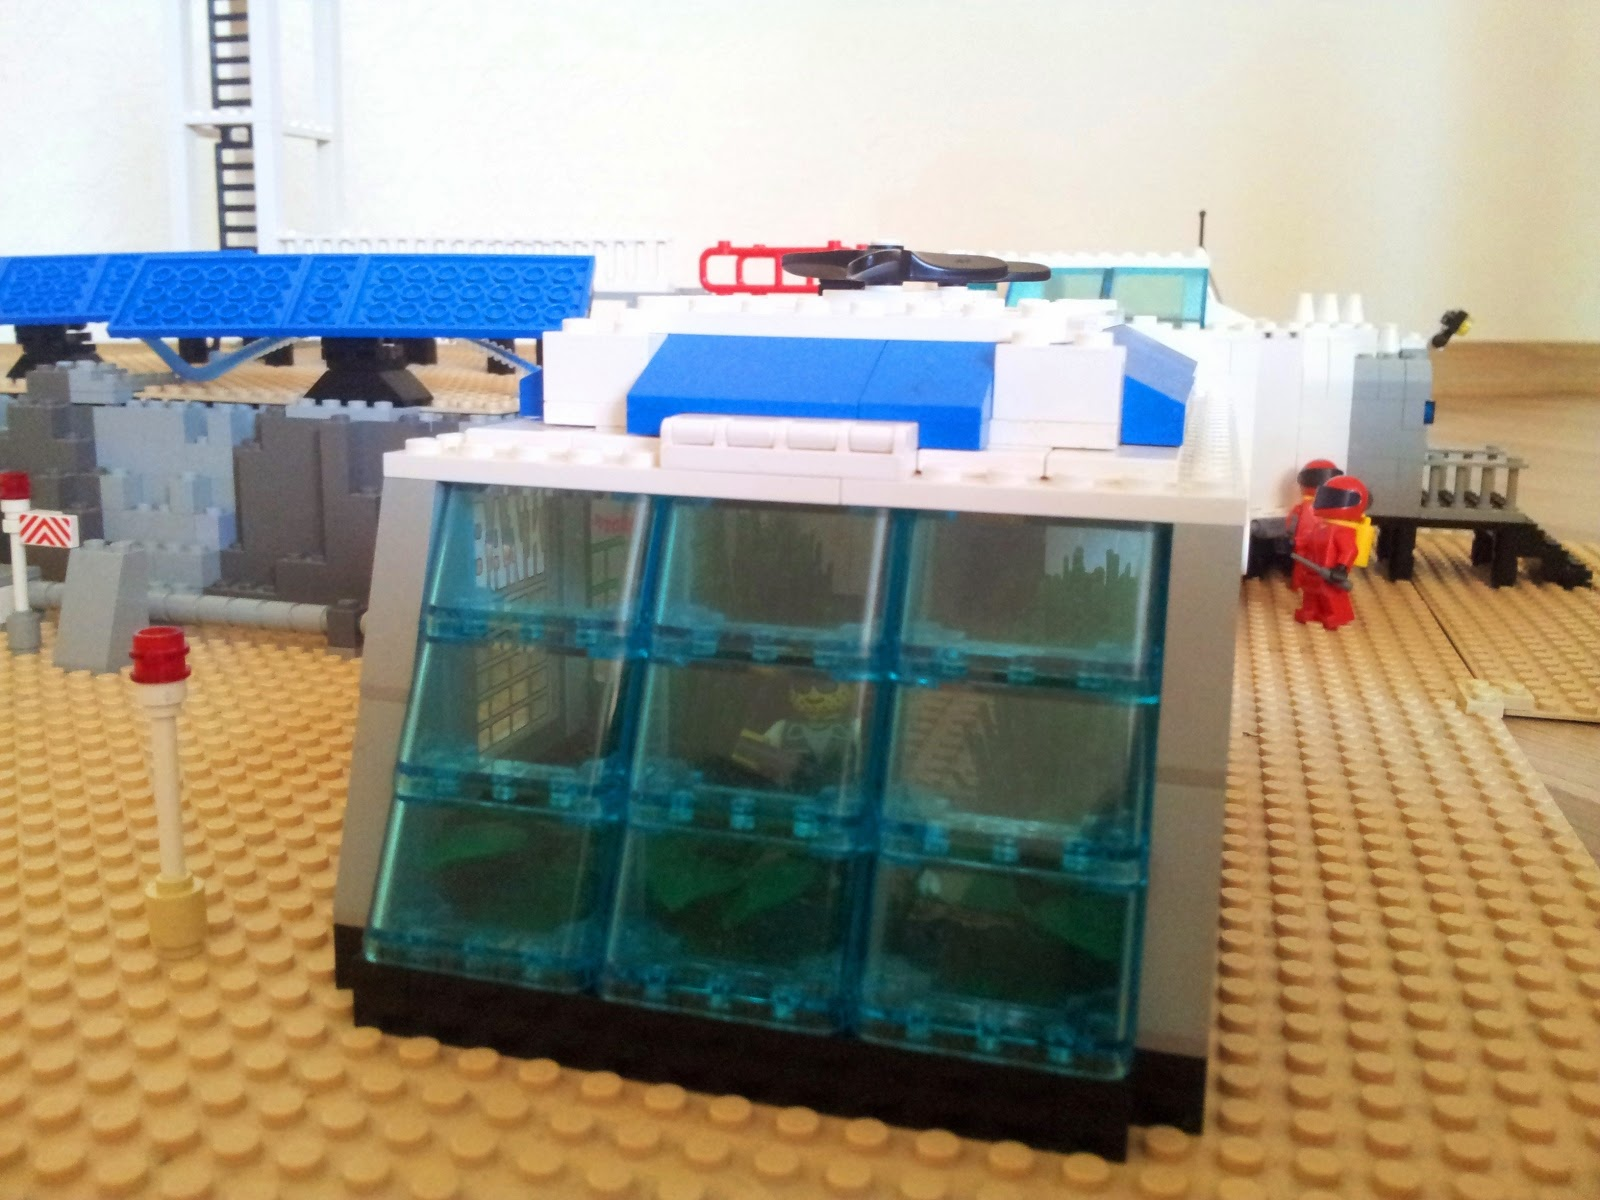 LEGO Mars base greenhouse